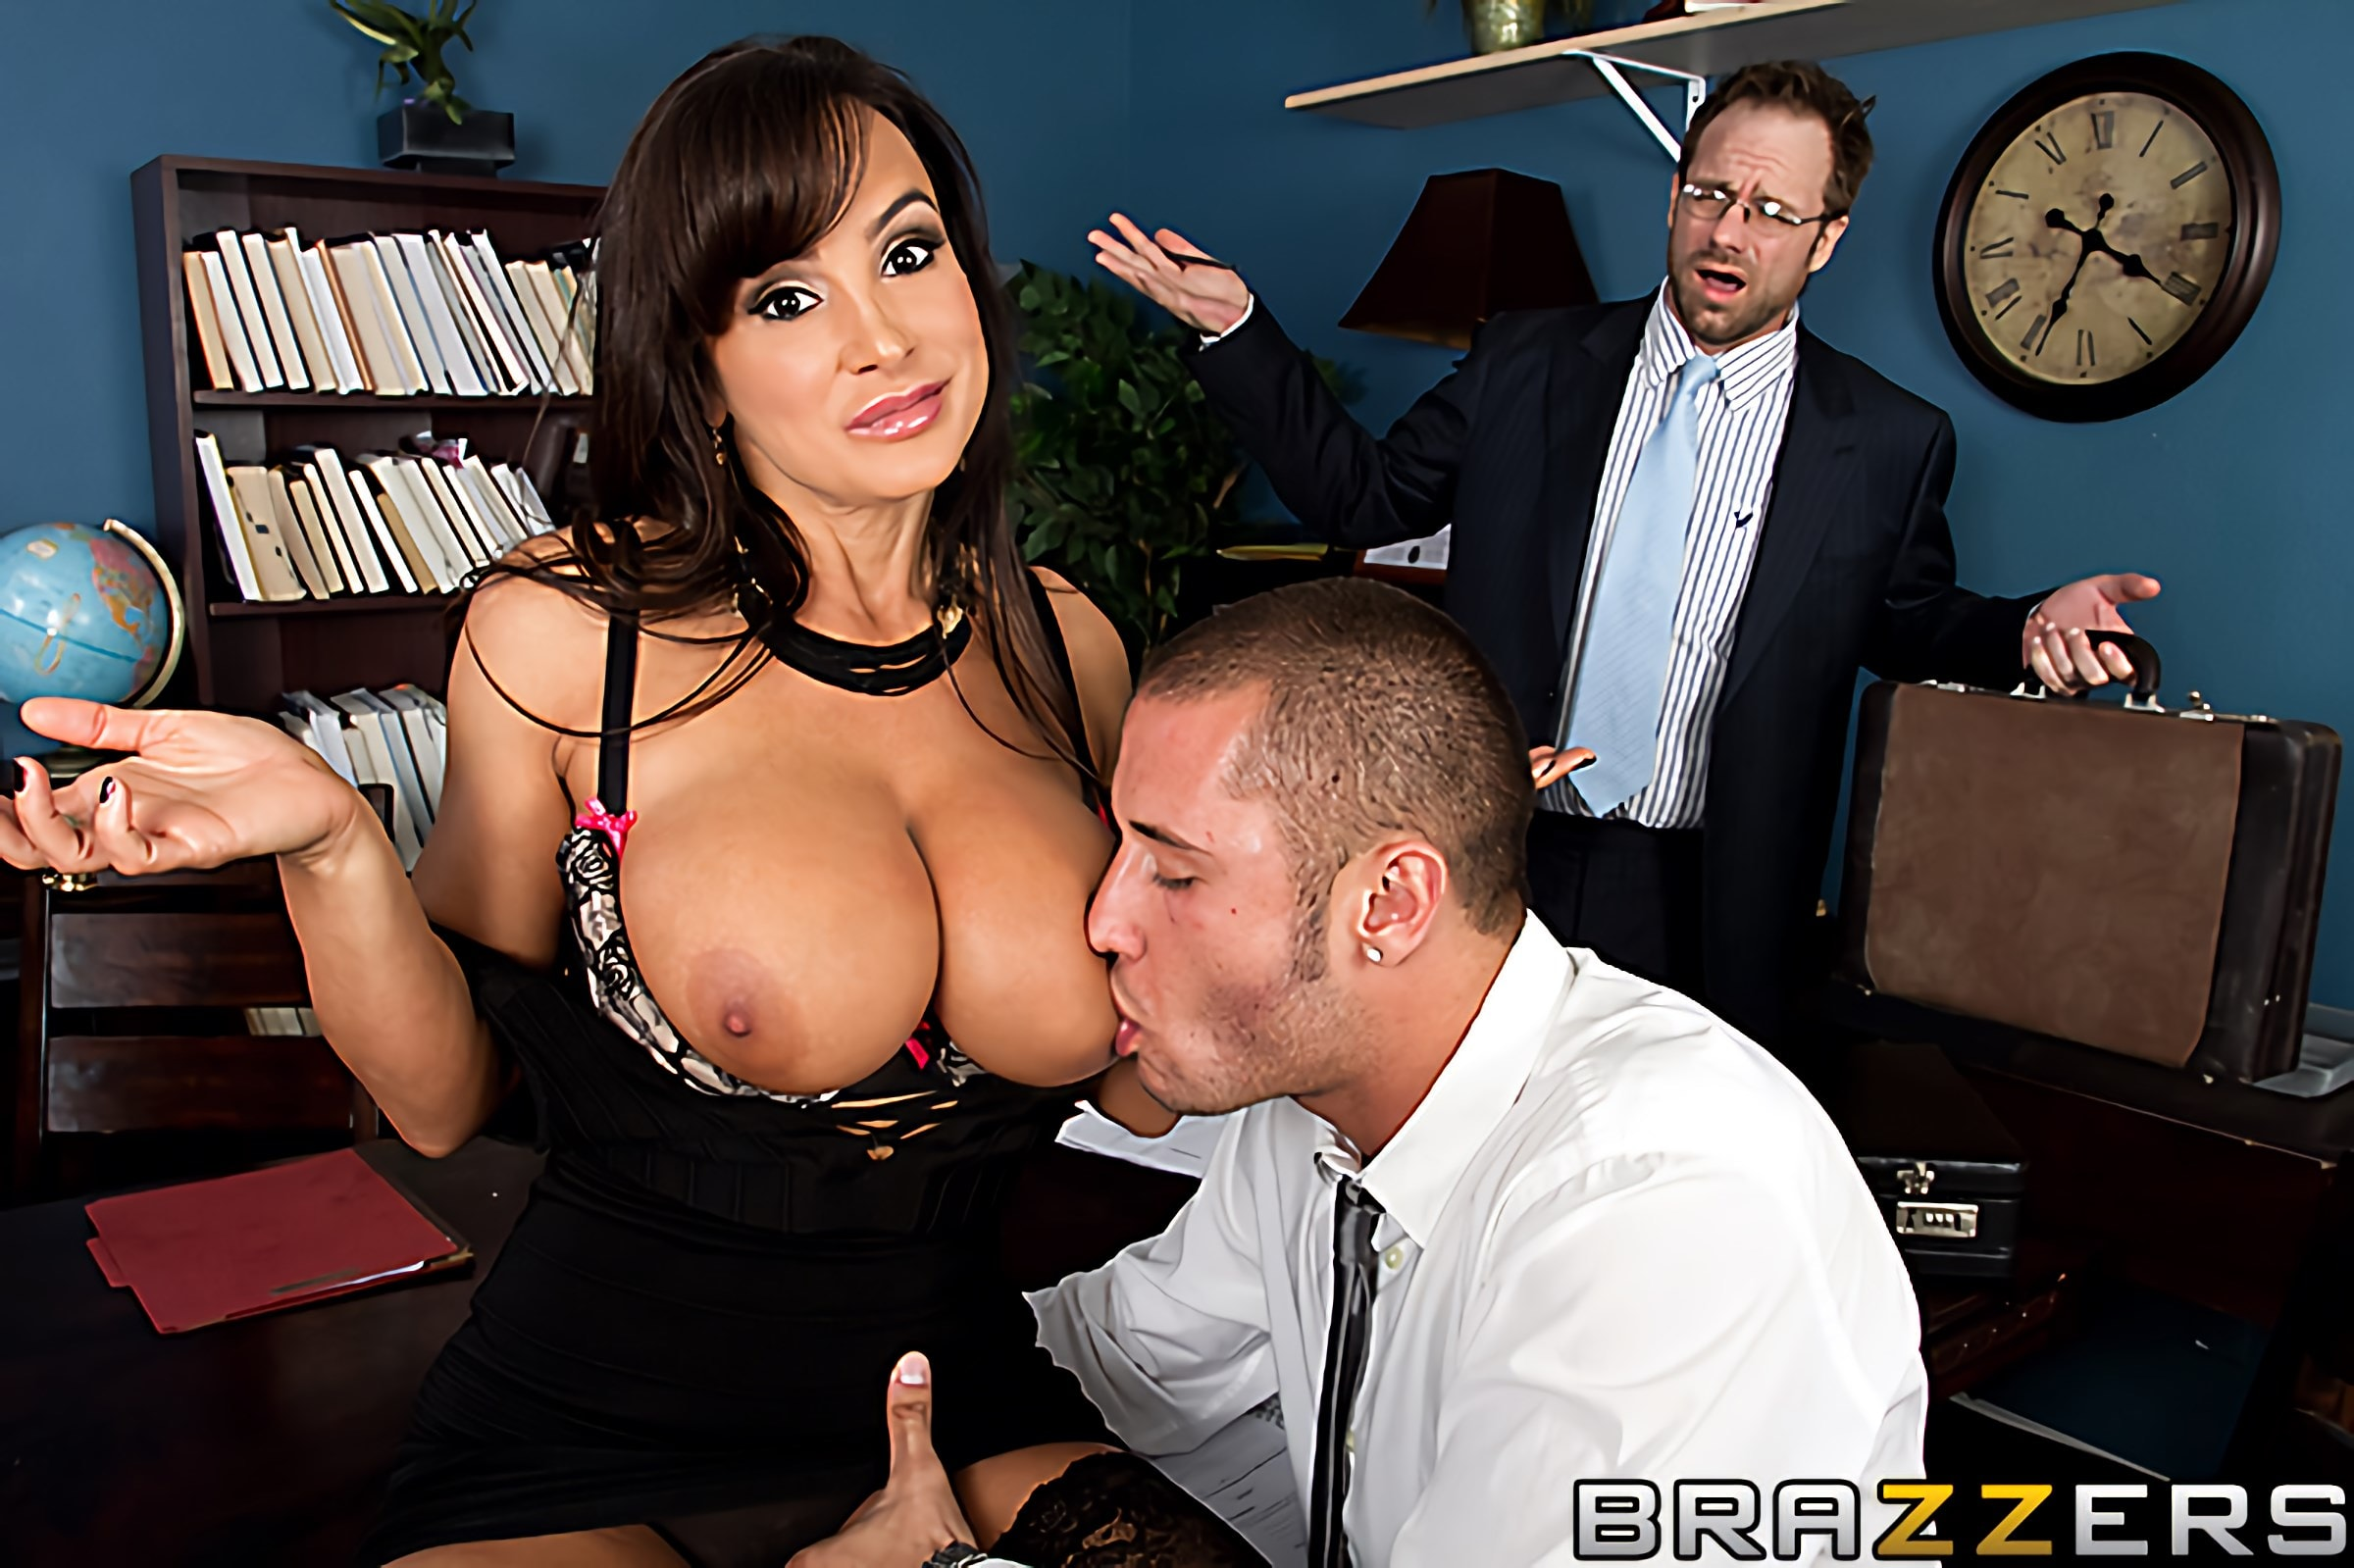 Brazzers 'Settling Out of Cunt' starring Lisa Ann (photo 3)